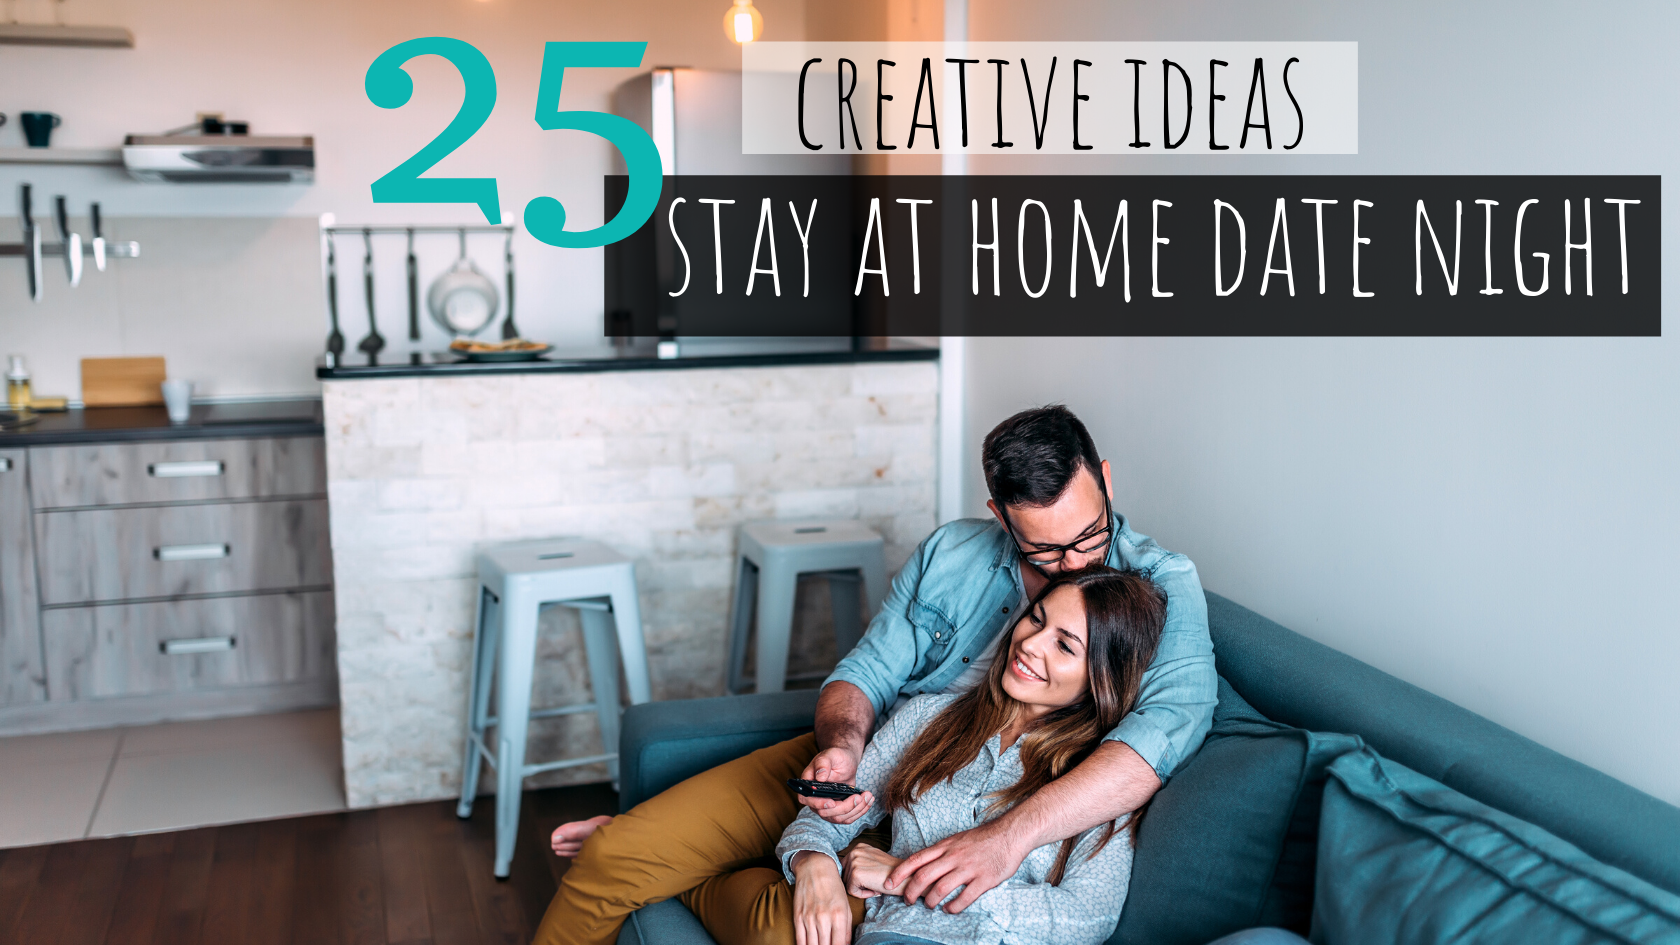 25 Stay At Home Date Night Ideas that will Skyrocket Your Relationship